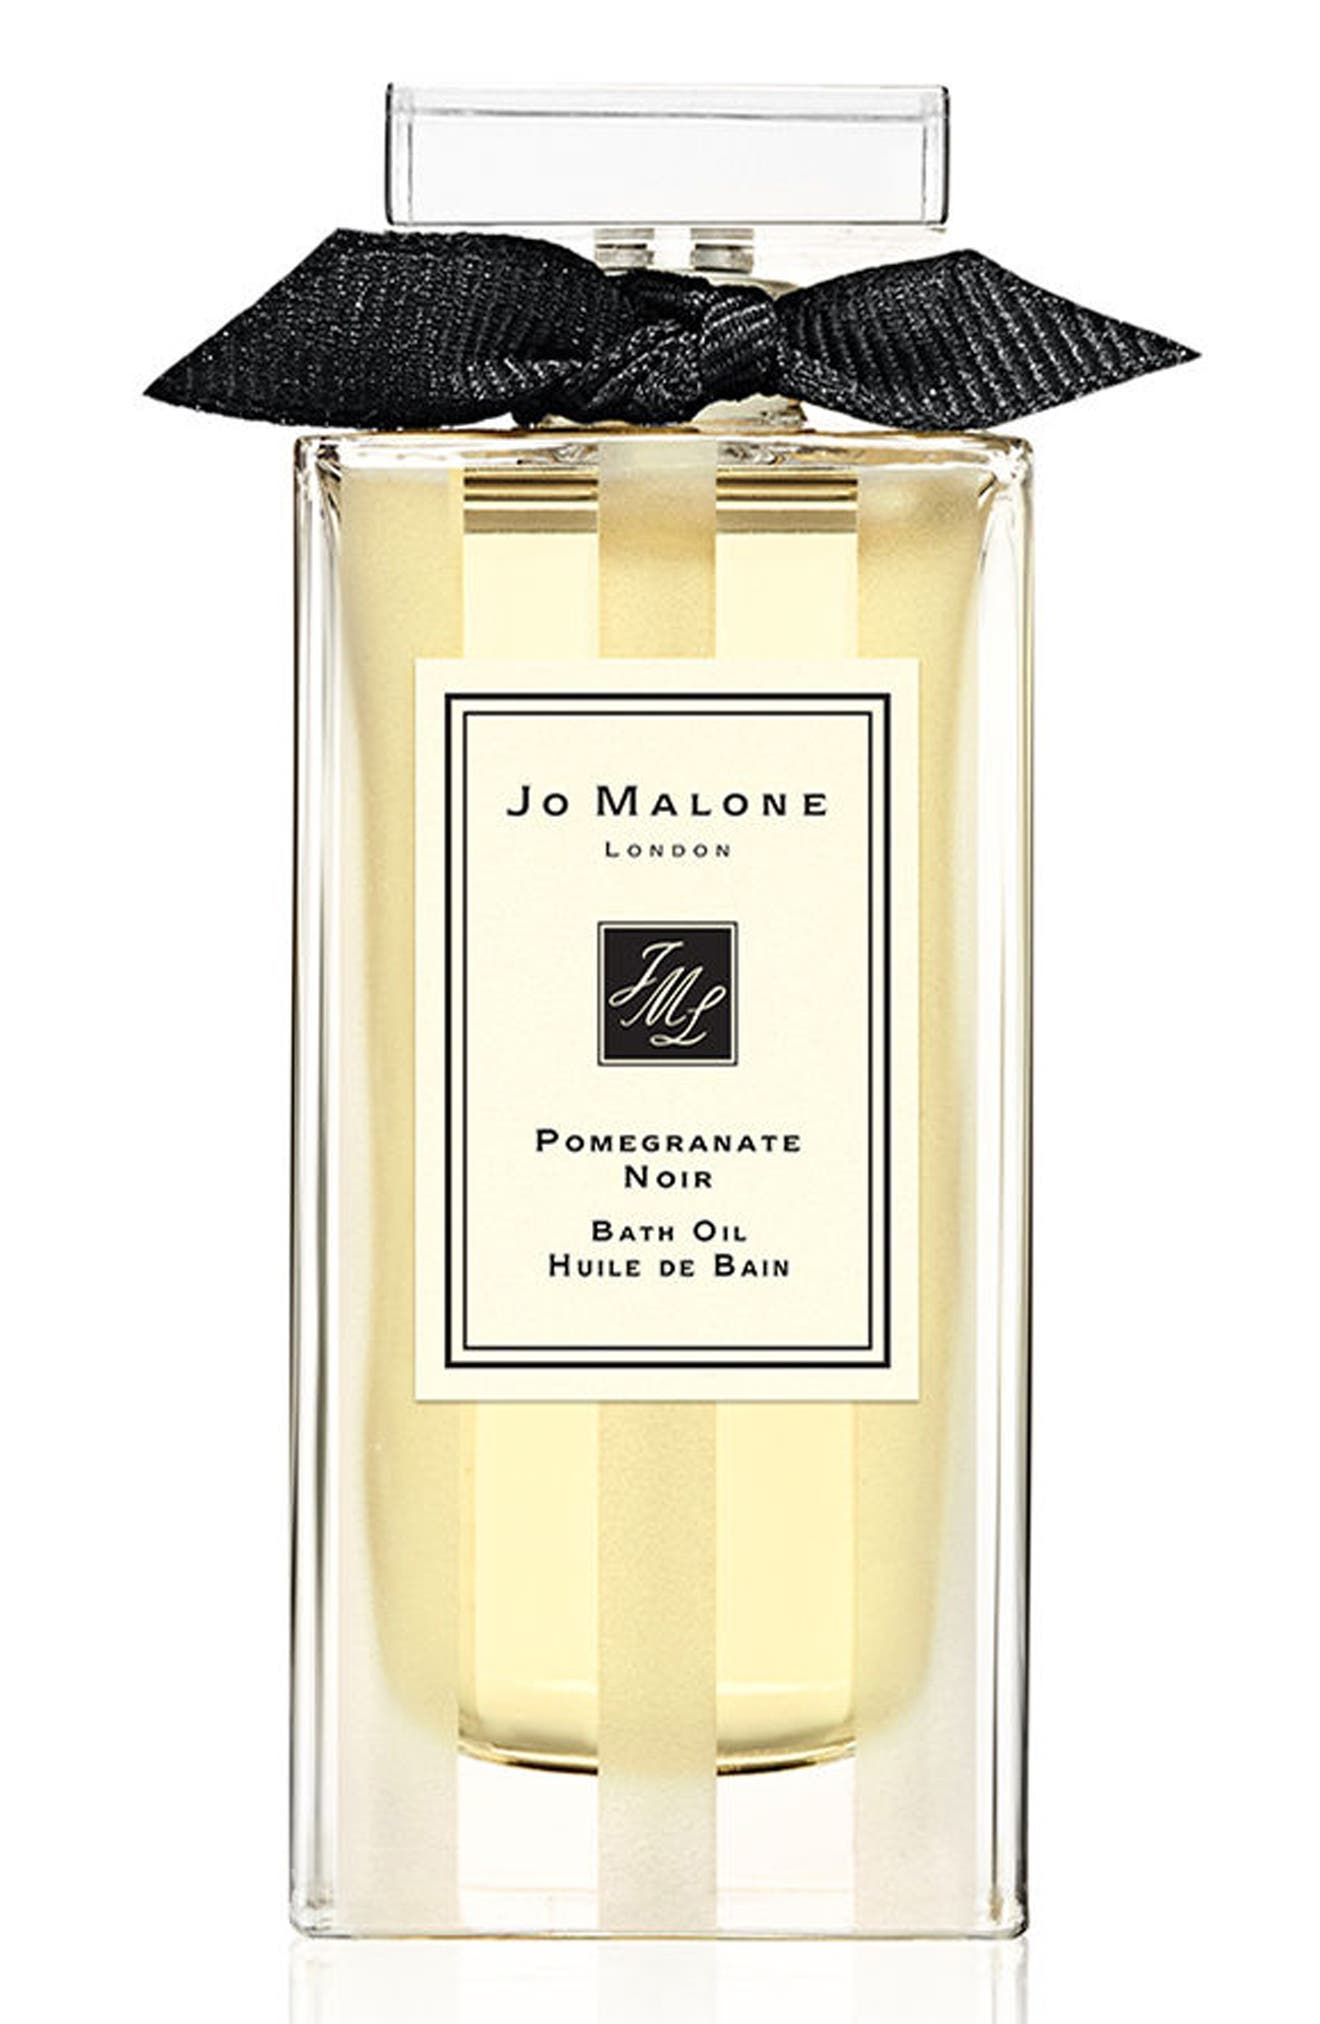 JO MALONE LONDON™ 'Pomegranate Noir' Bath Oil